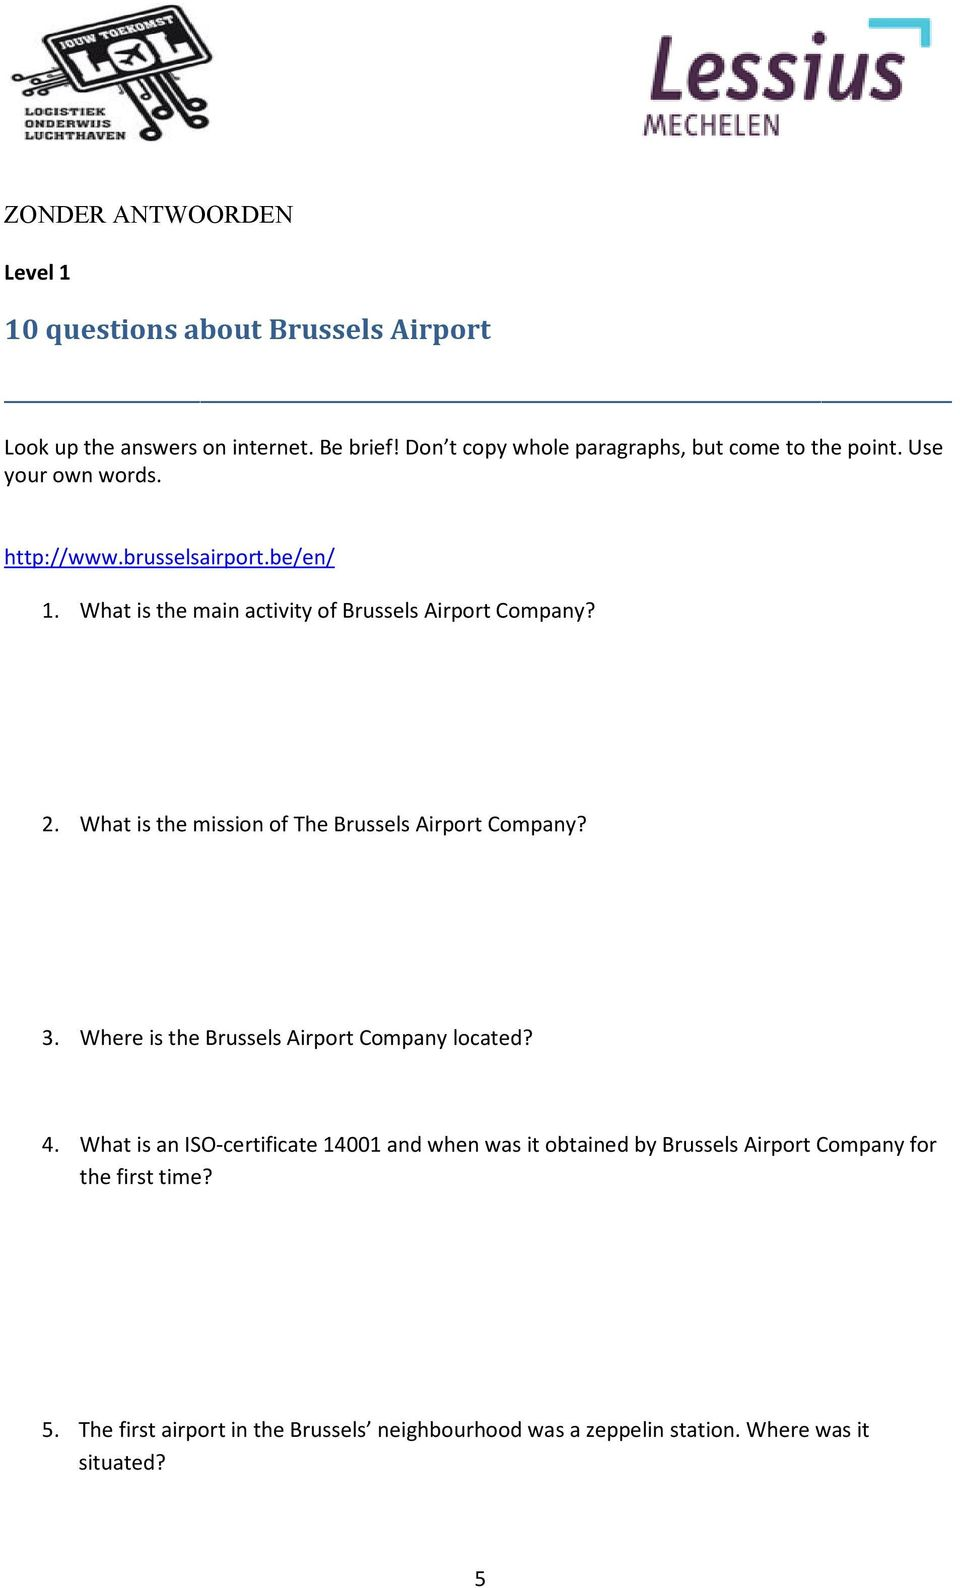 What is the main activity of Brussels Airport Company? 2. What is the mission of The Brussels Airport Company? 3.